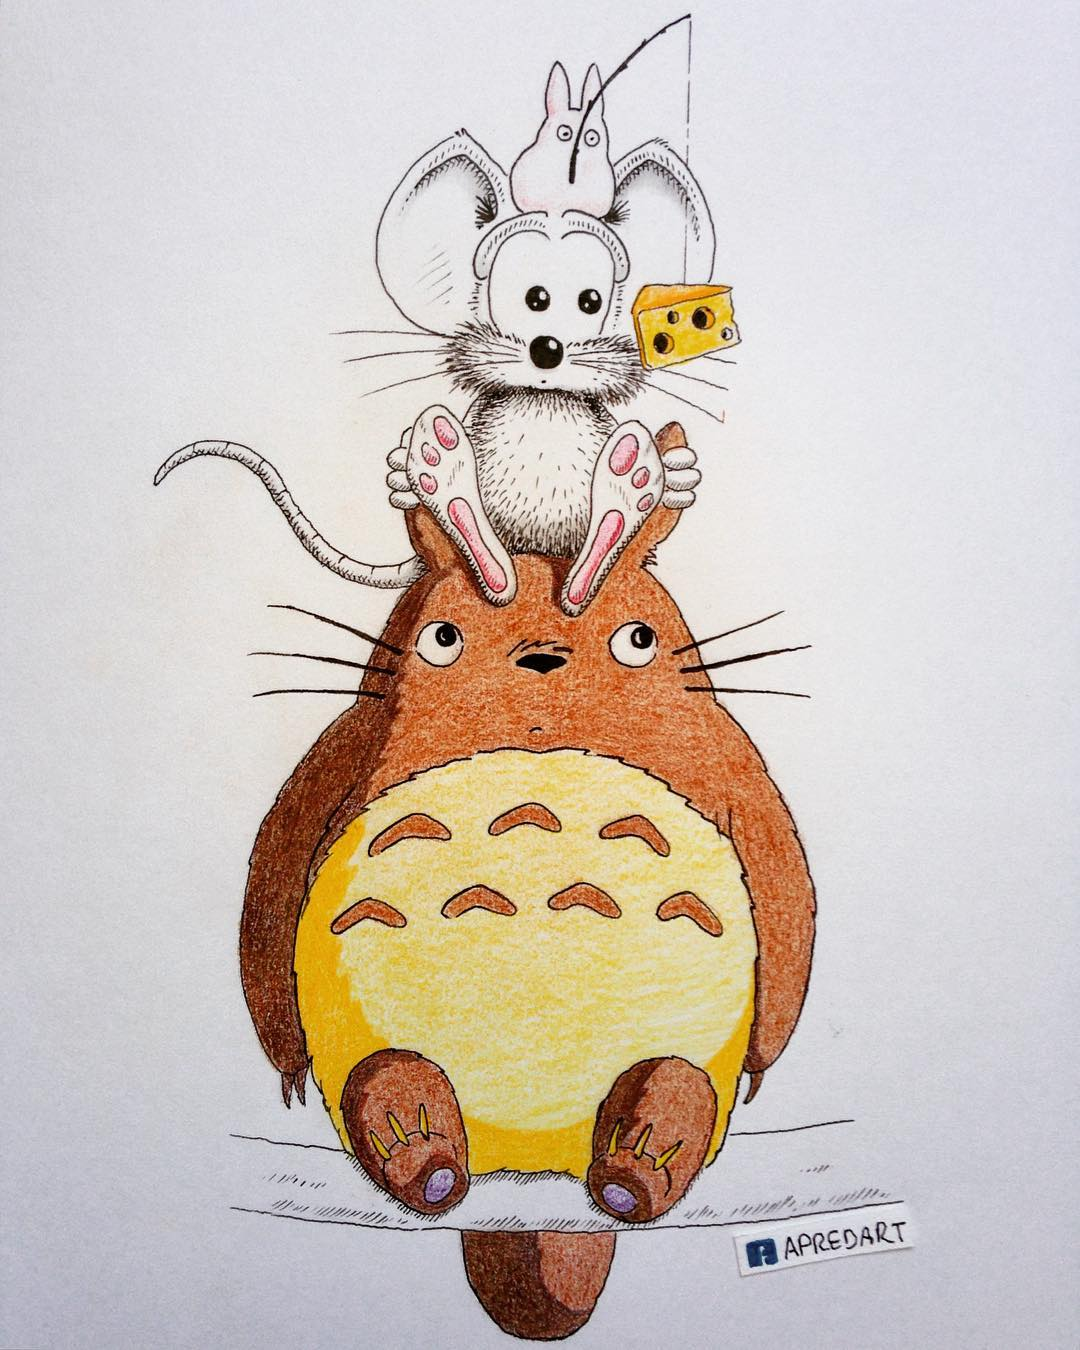 06-Totoro-Loïc-Apreda-apredart-Drawings-of-Rikiki-the-Mouse-and-his-Famous-Friends-www-designstack-co